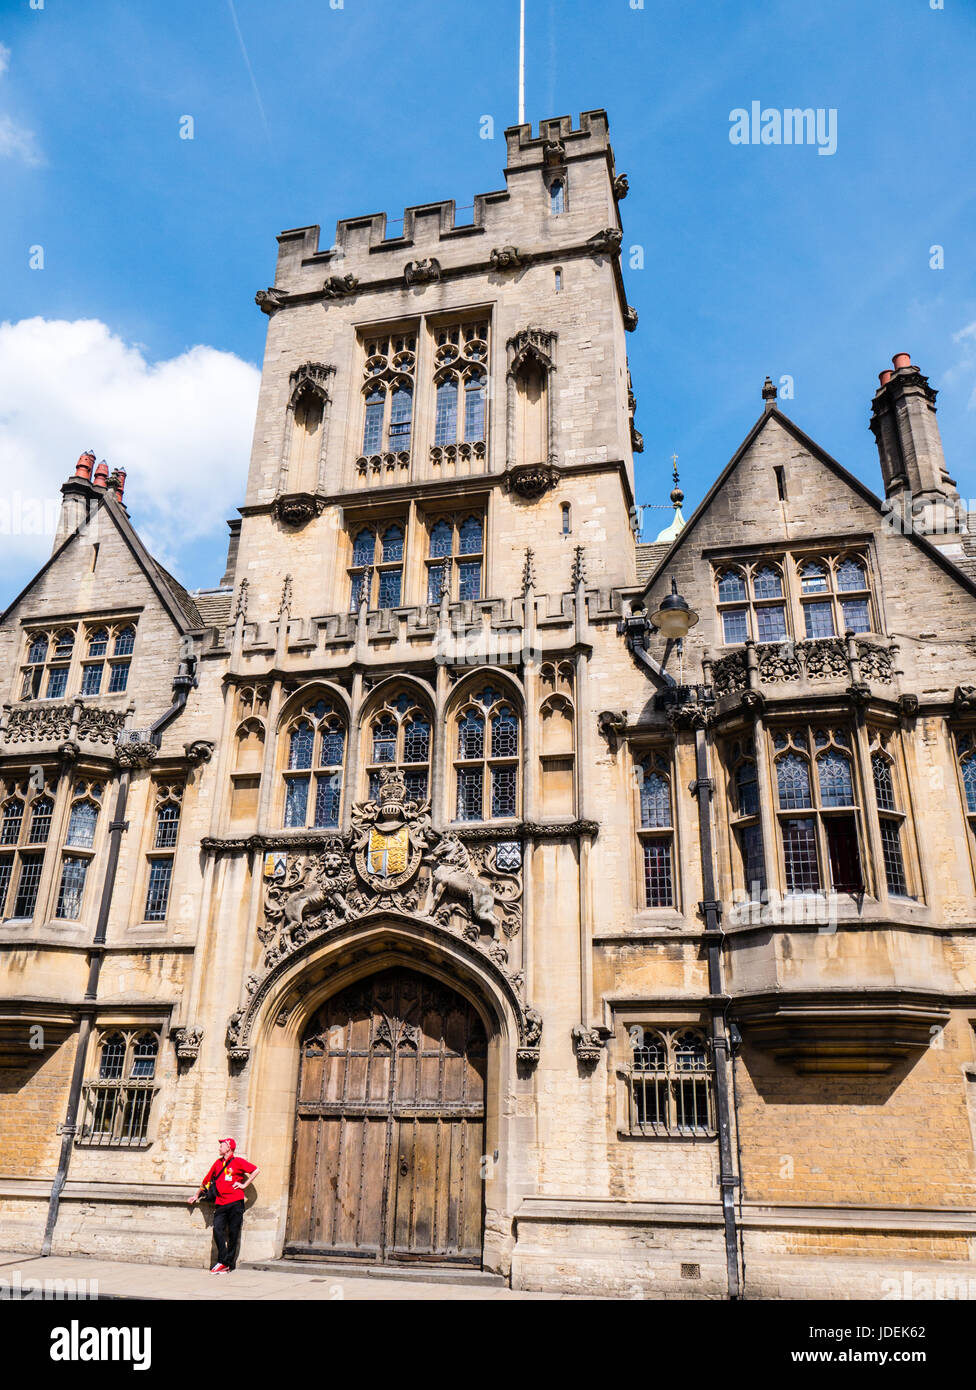 Brasenose College Entrance, Oxford High st, Oxford, Oxfordshire, England - Stock Image